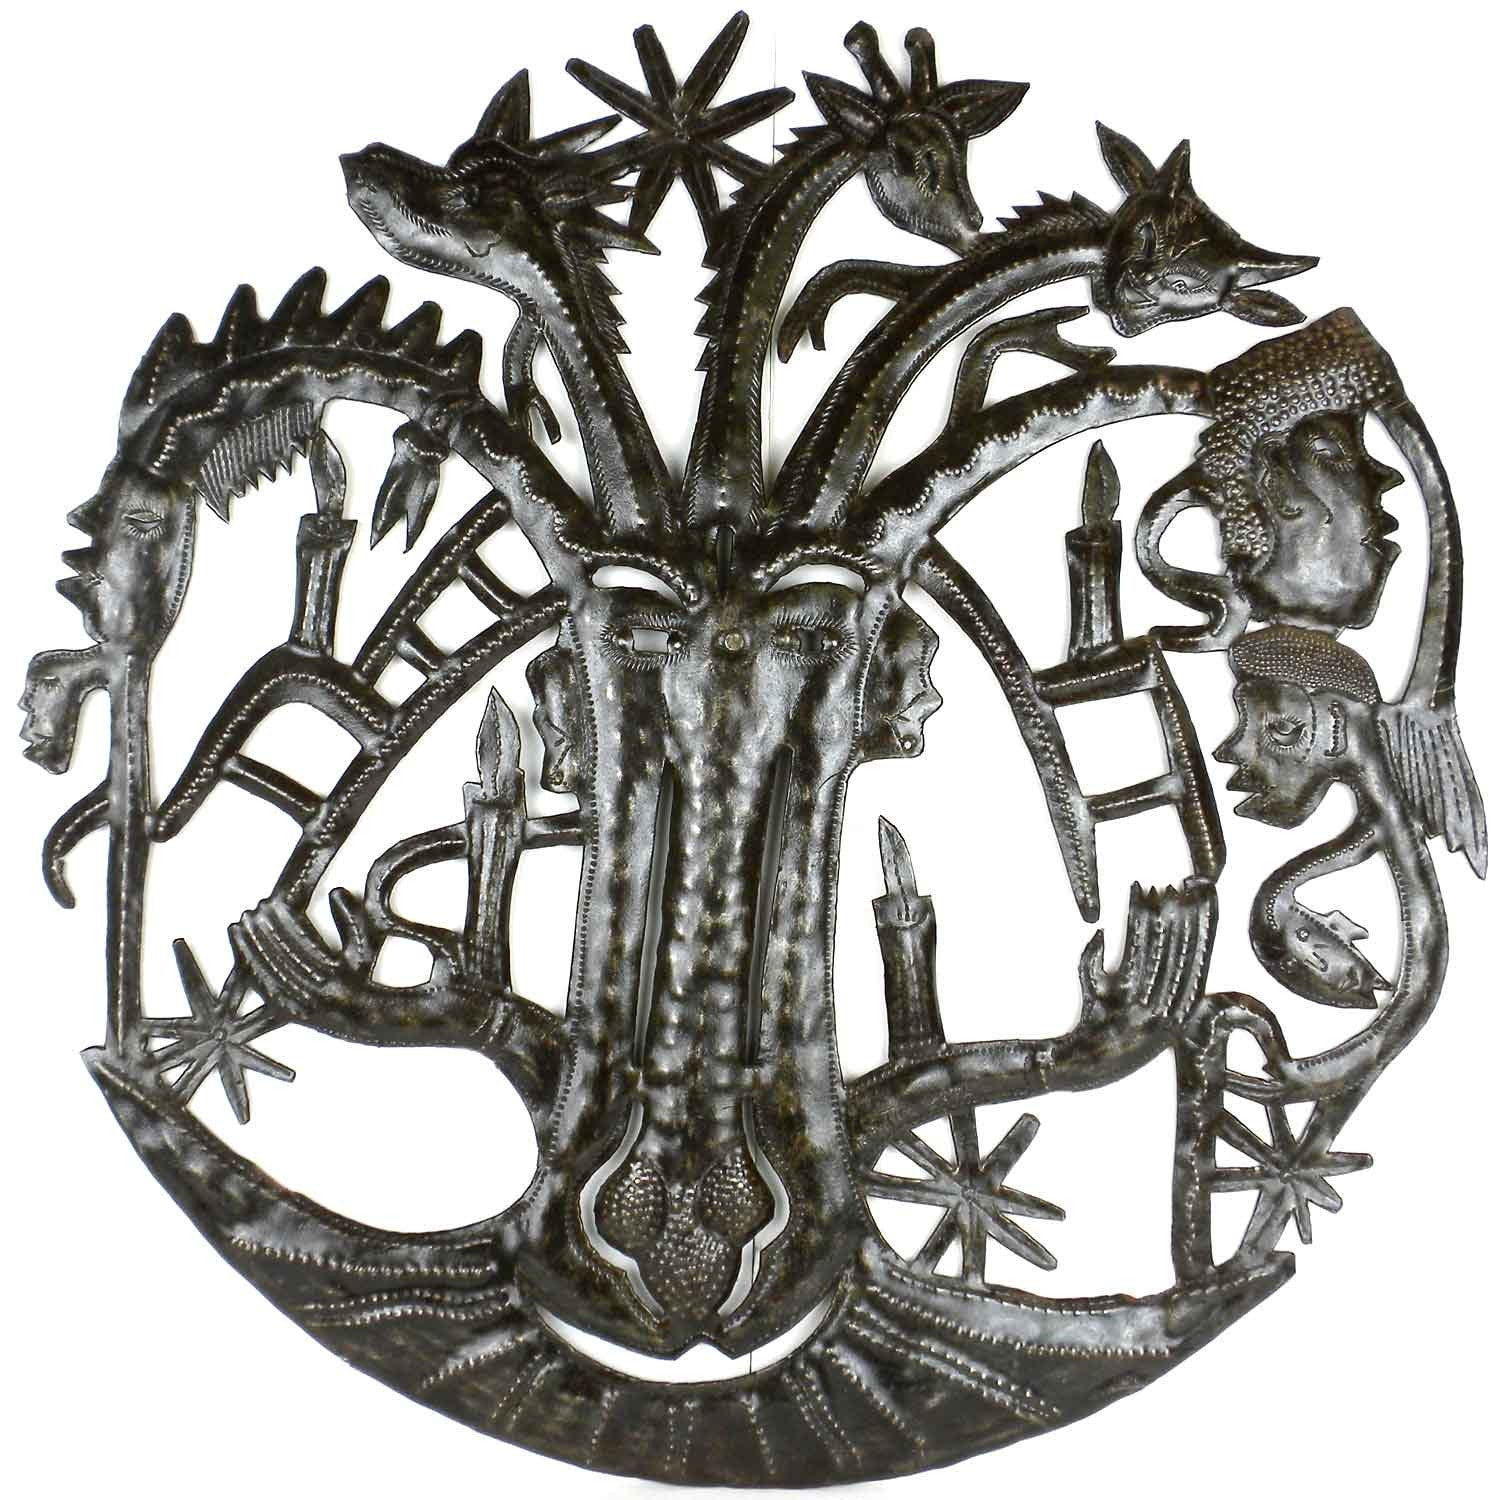 Haitian Metal Wall Art ce with Many Heads - 004 - Croix des Bouquets